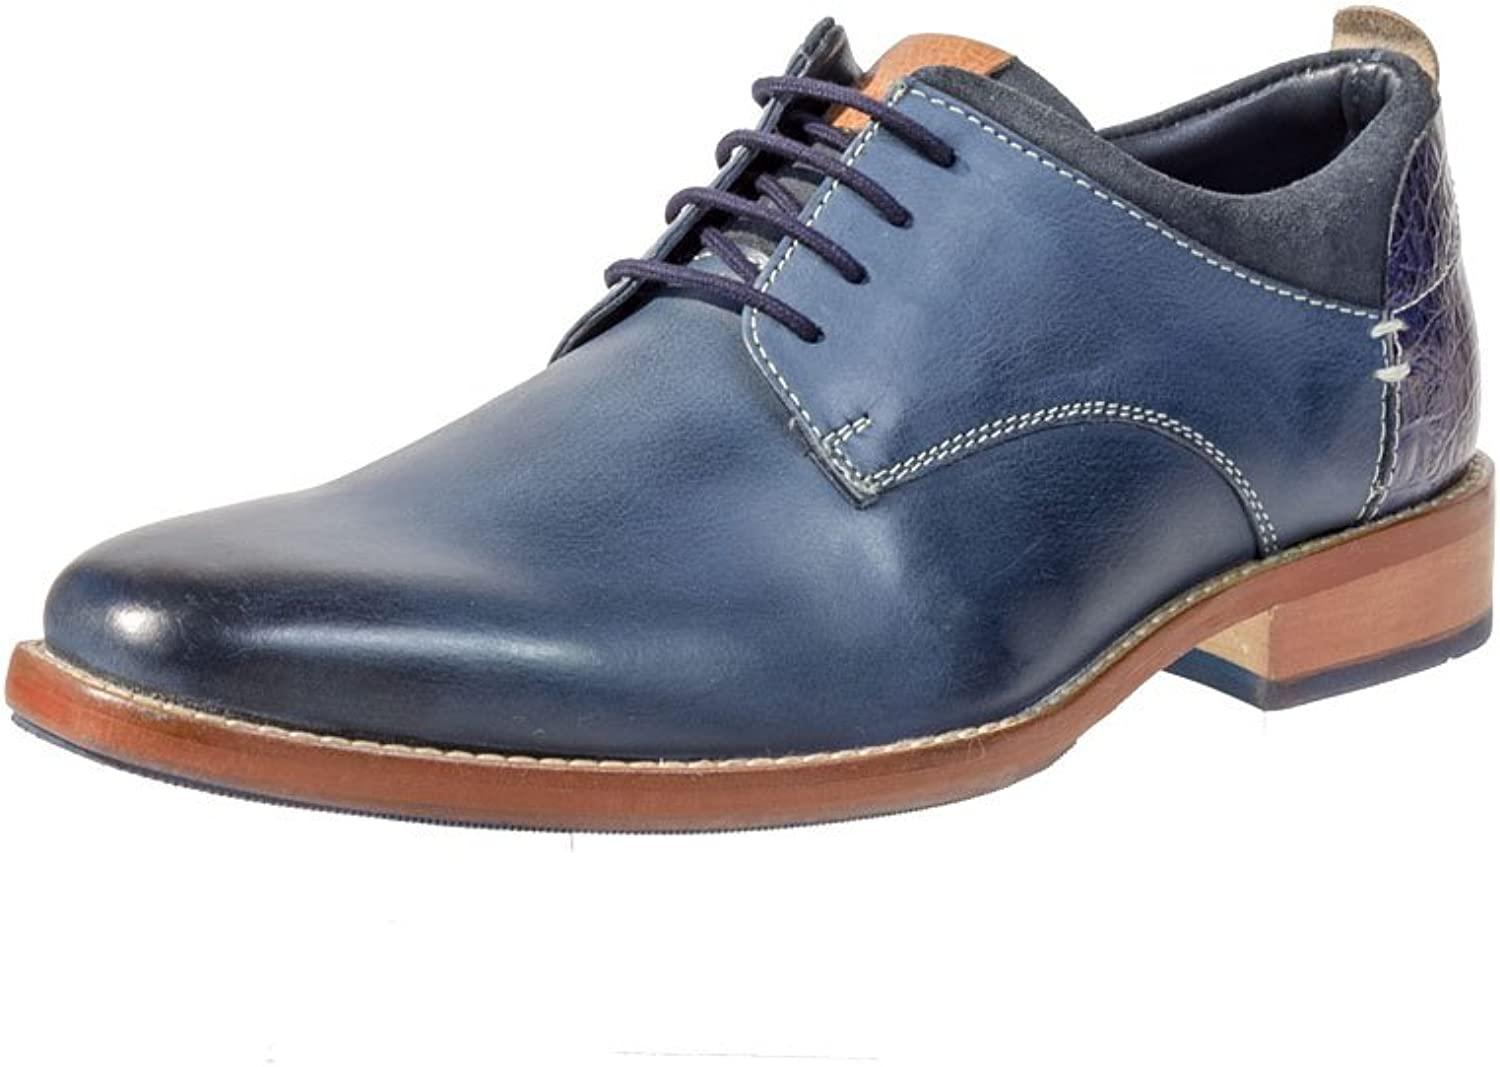 Philipp brown Germany Men's Lace-Up Flats bluee bluee